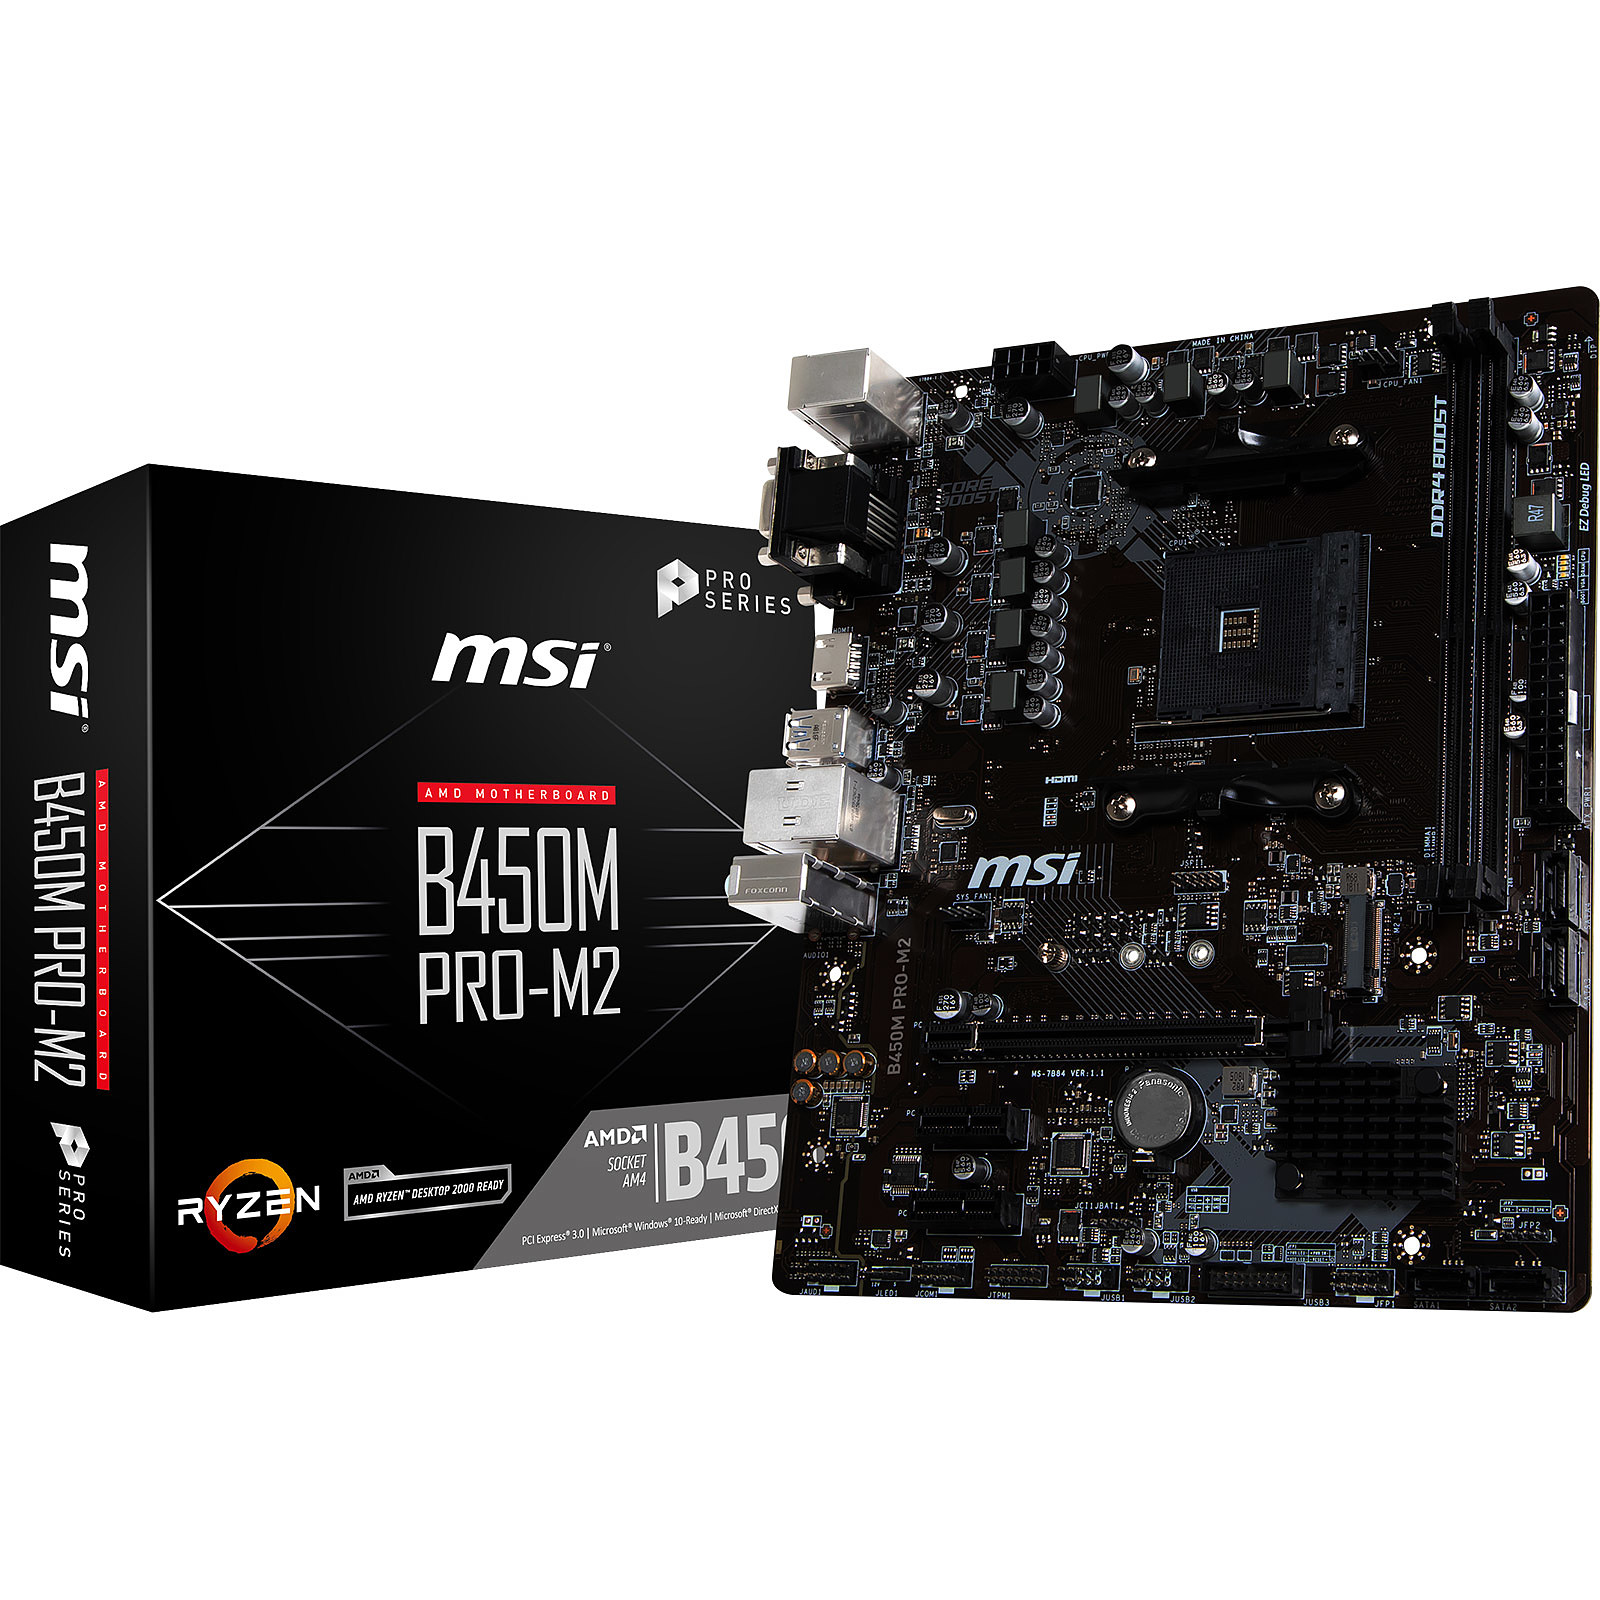 MSI B450M PRO M2 Carte Mere Micro ATX Socket AM4 AMD B450